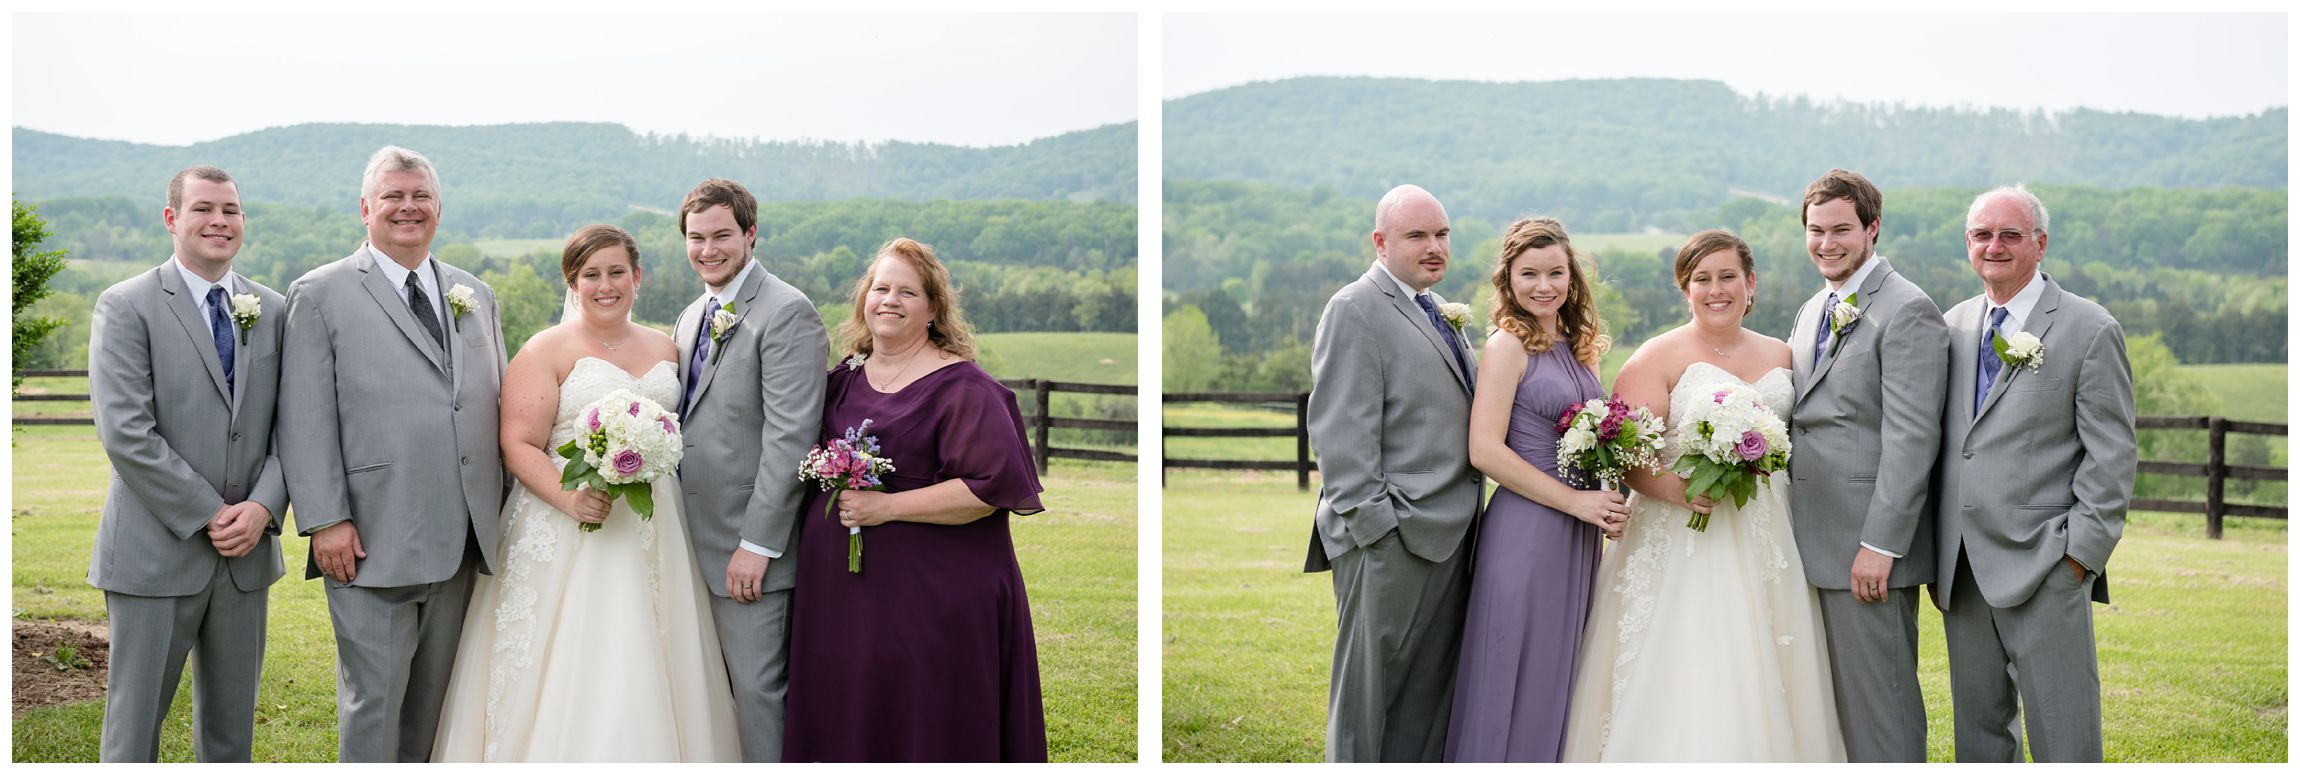 family portraits at rustic wedding at Wolftrap Farm